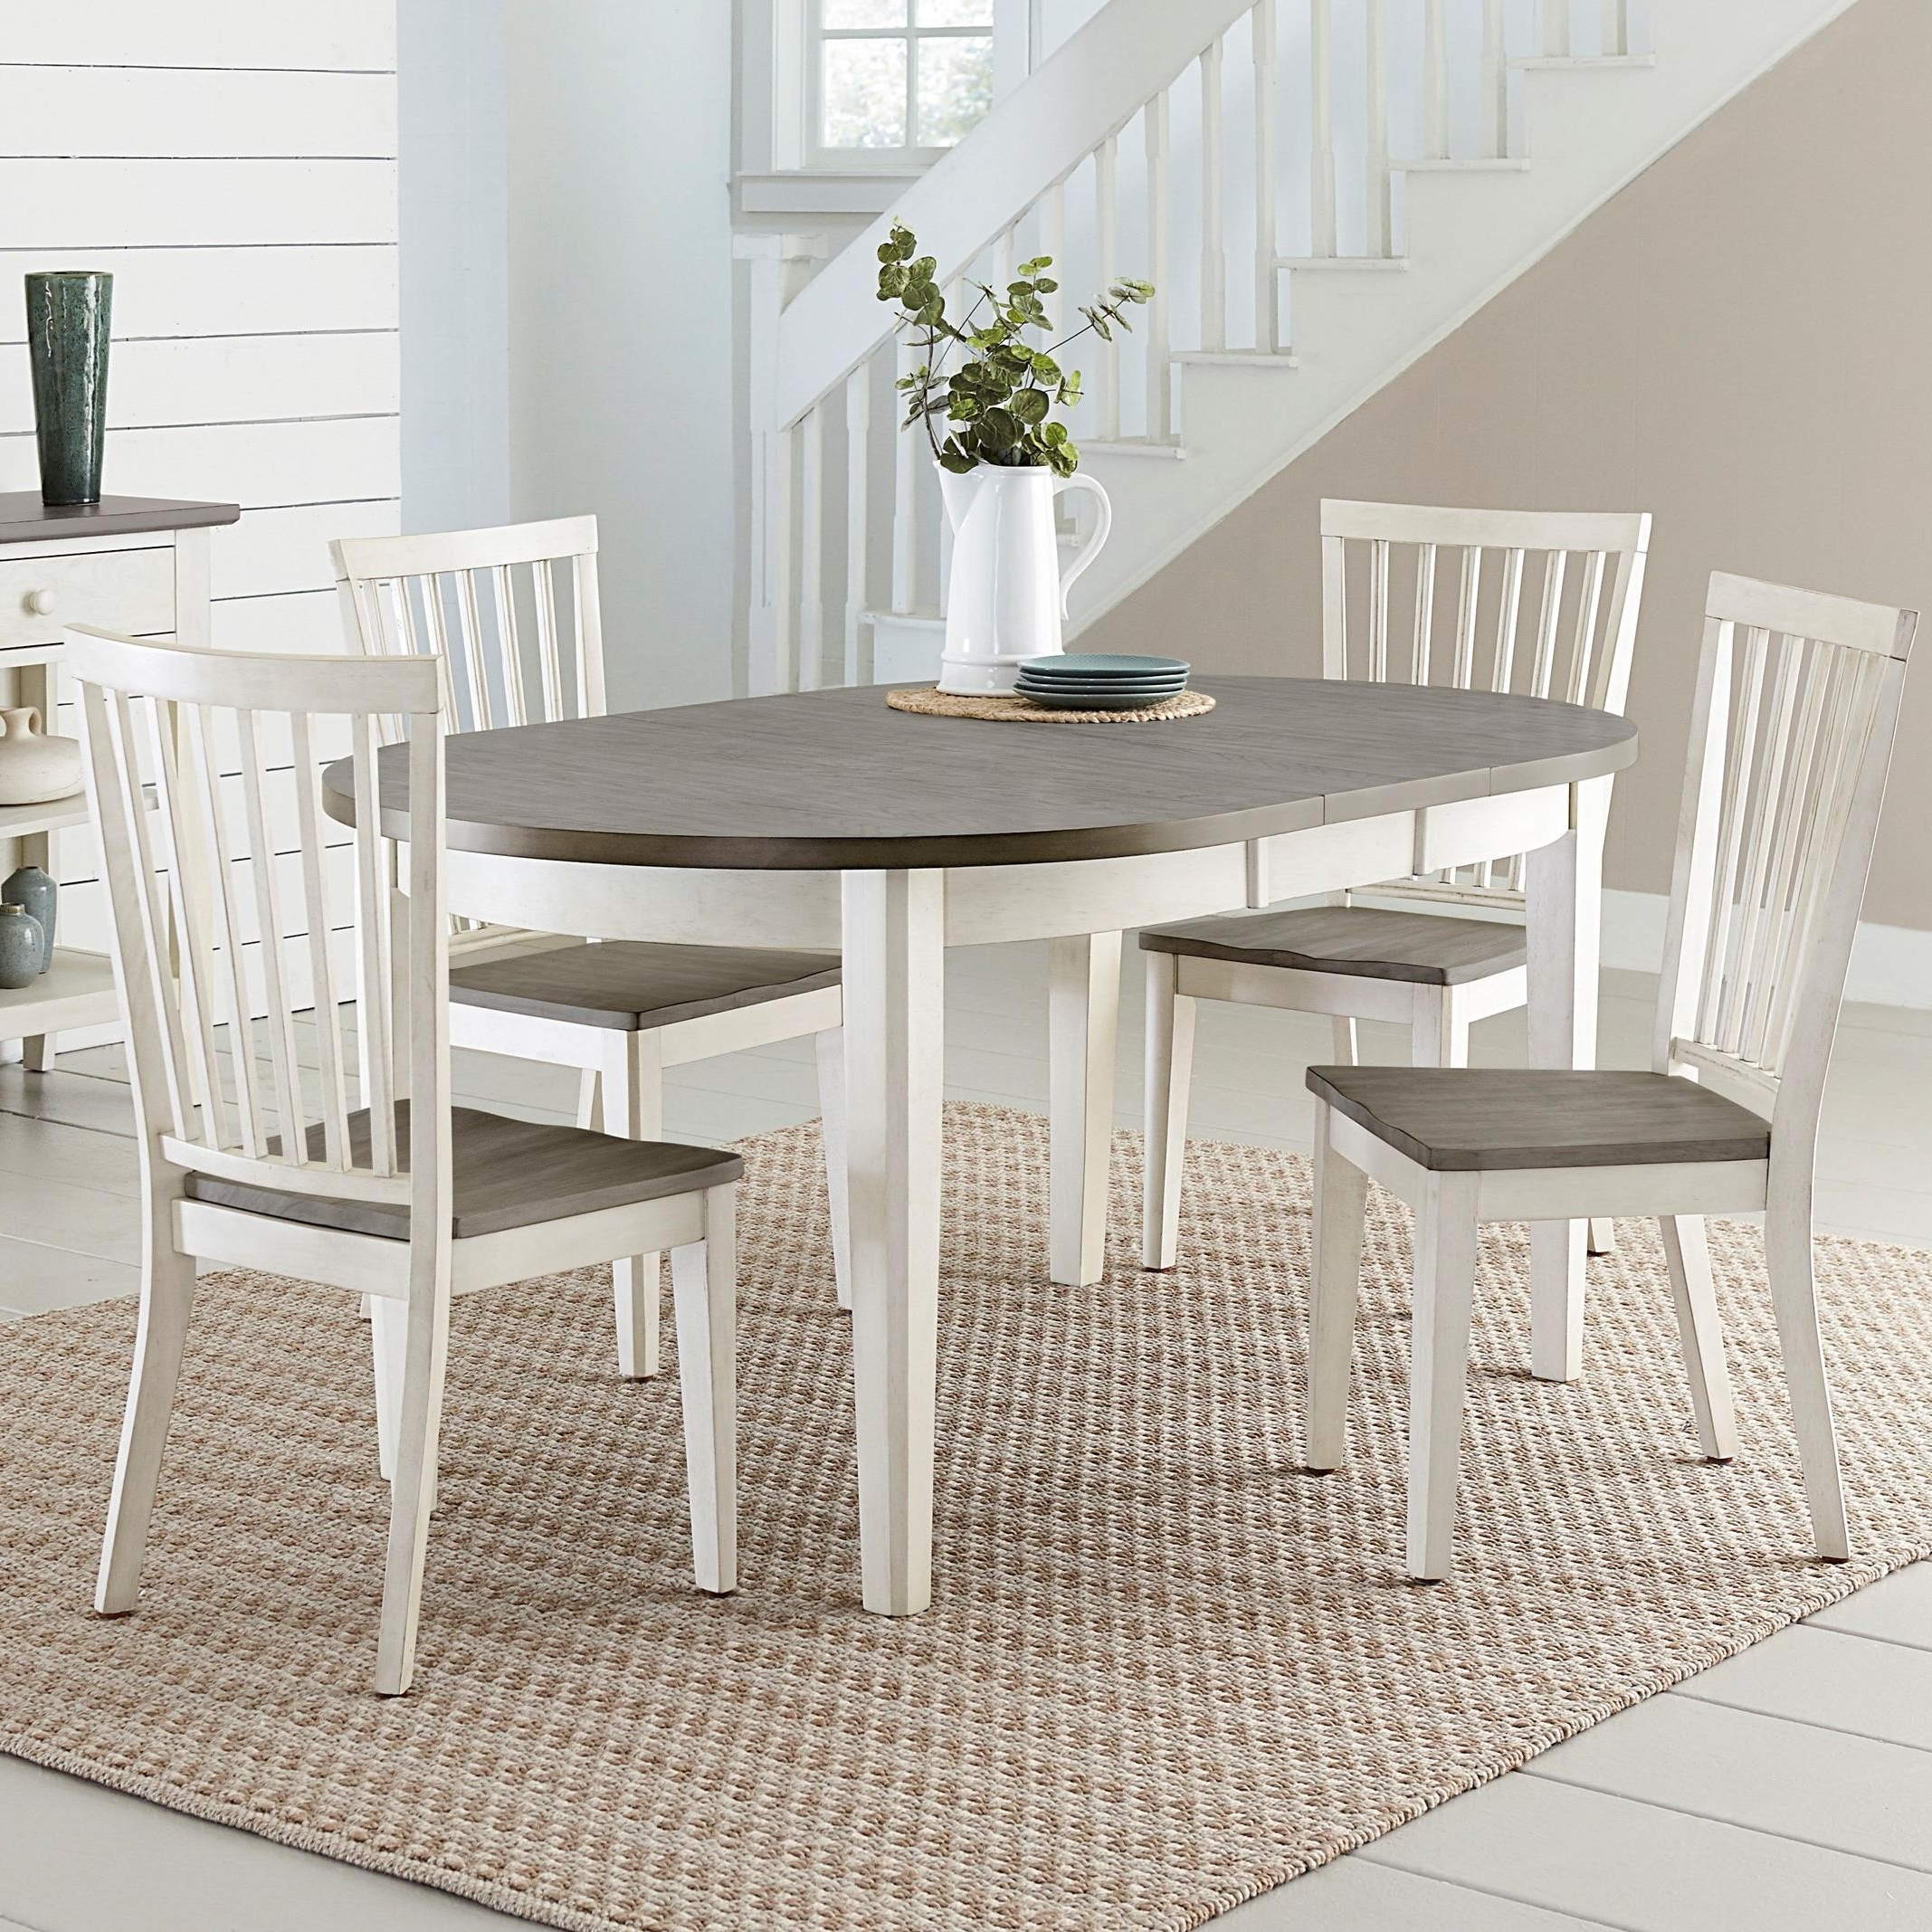 Conover 5 Piece Dining Sets Within Popular Progressive Furniture Lancaster Casual 5 Piece Dining Set With Two (View 17 of 25)